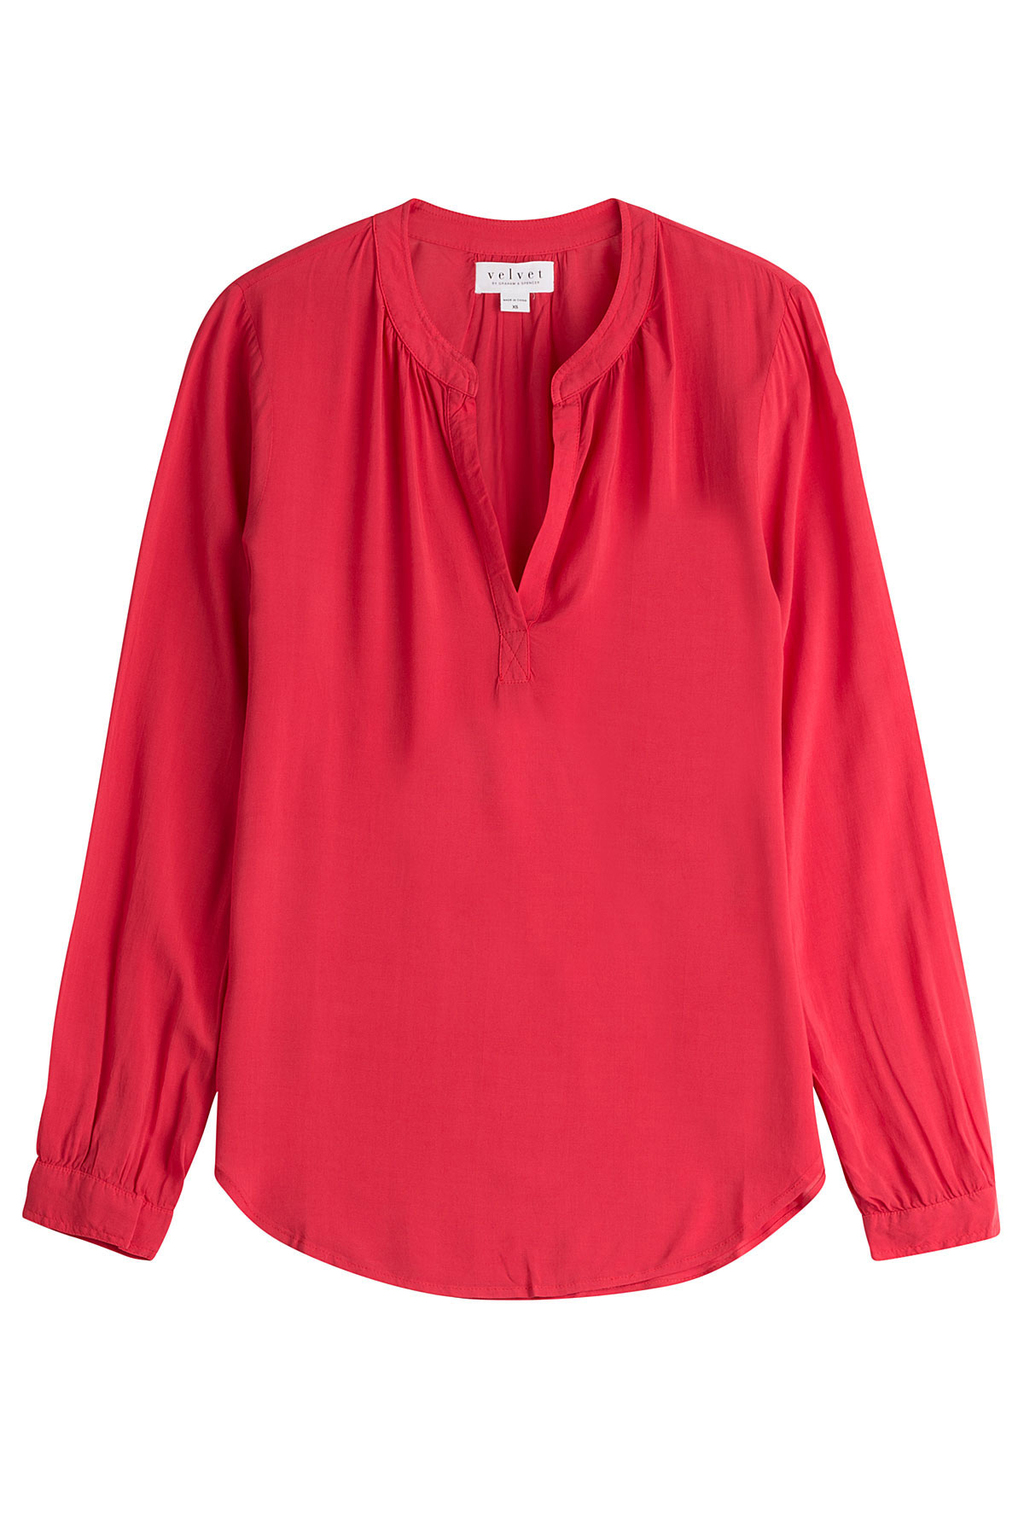 V Neck Blouse Red - pattern: plain; style: blouse; predominant colour: true red; occasions: casual, creative work; length: standard; neckline: collarstand & mandarin with v-neck; fibres: viscose/rayon - 100%; fit: body skimming; sleeve length: long sleeve; sleeve style: standard; pattern type: fabric; texture group: other - light to midweight; season: s/s 2016